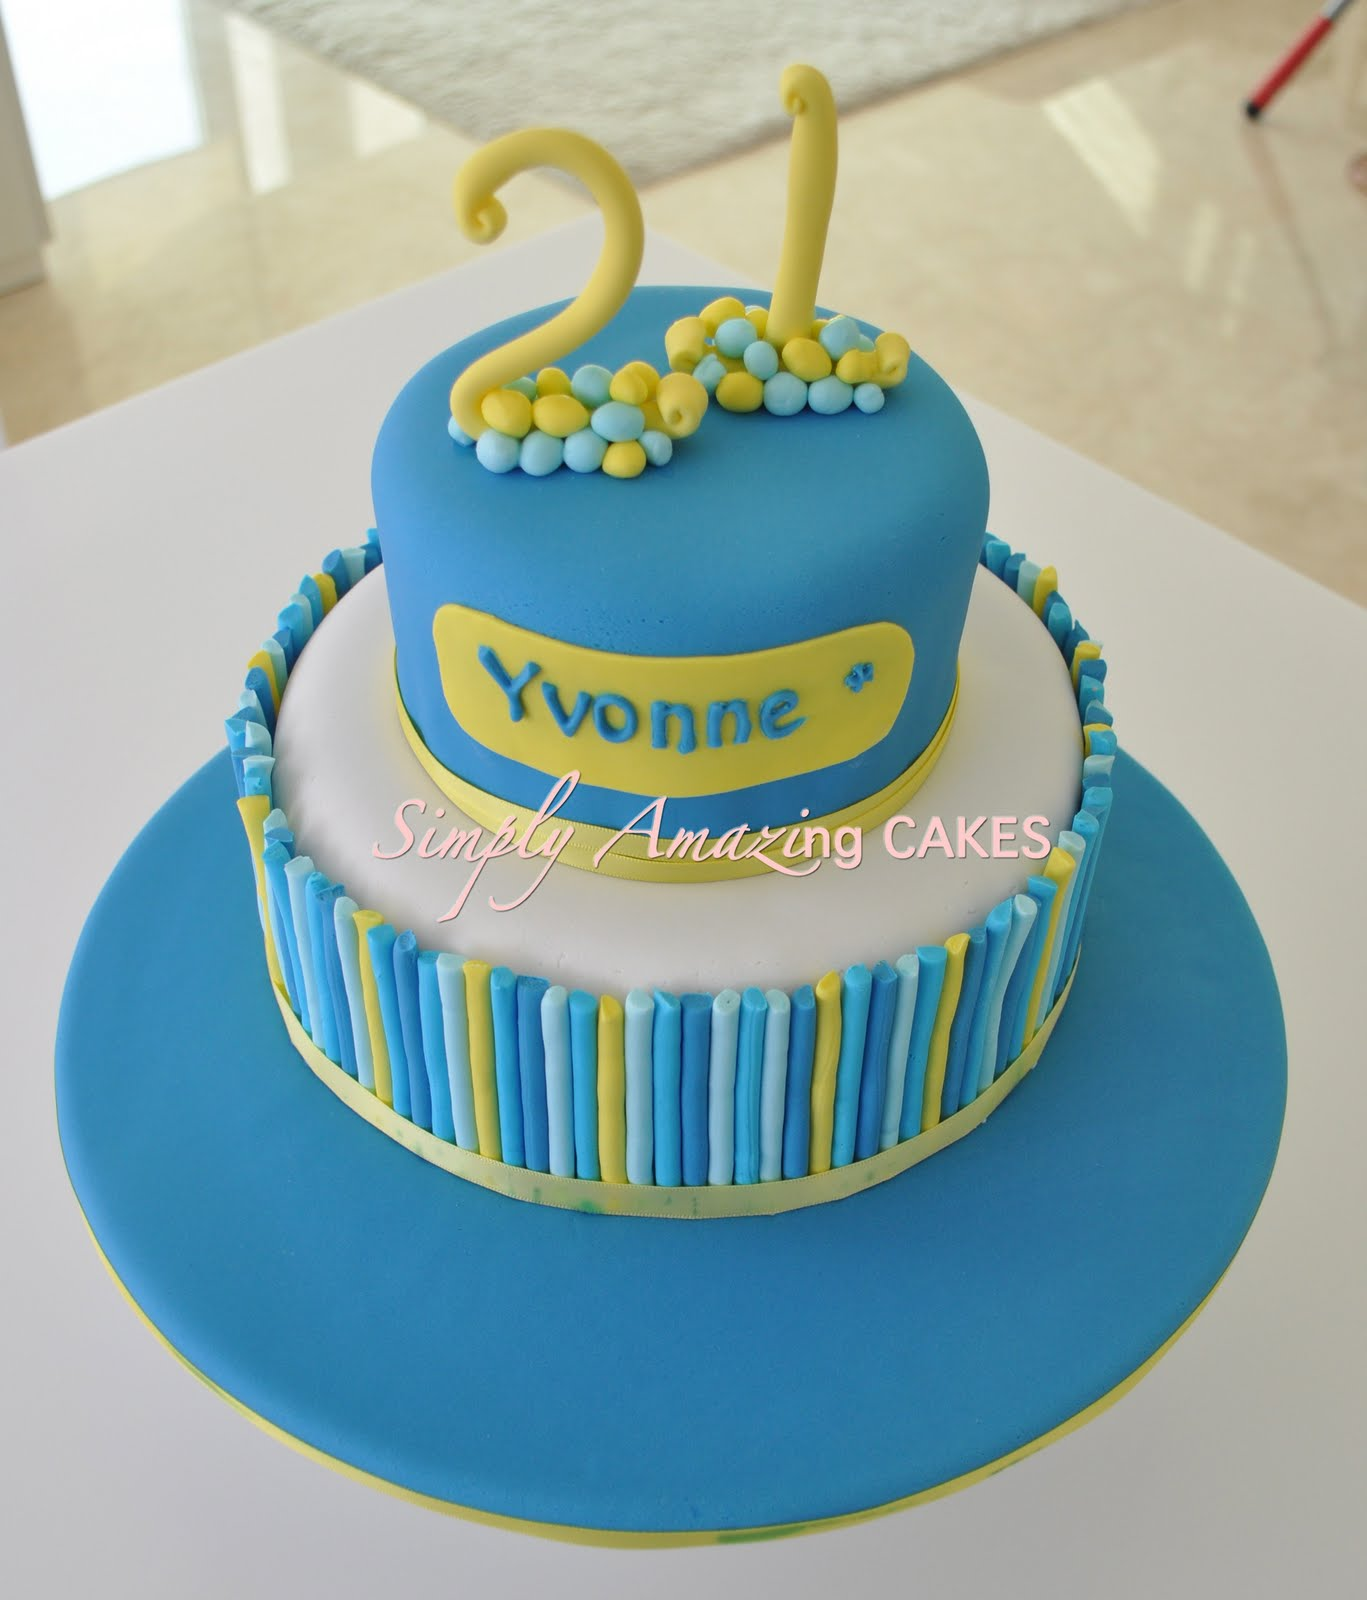 Simply Amazing Cakes: Yvonne's 21st Cake